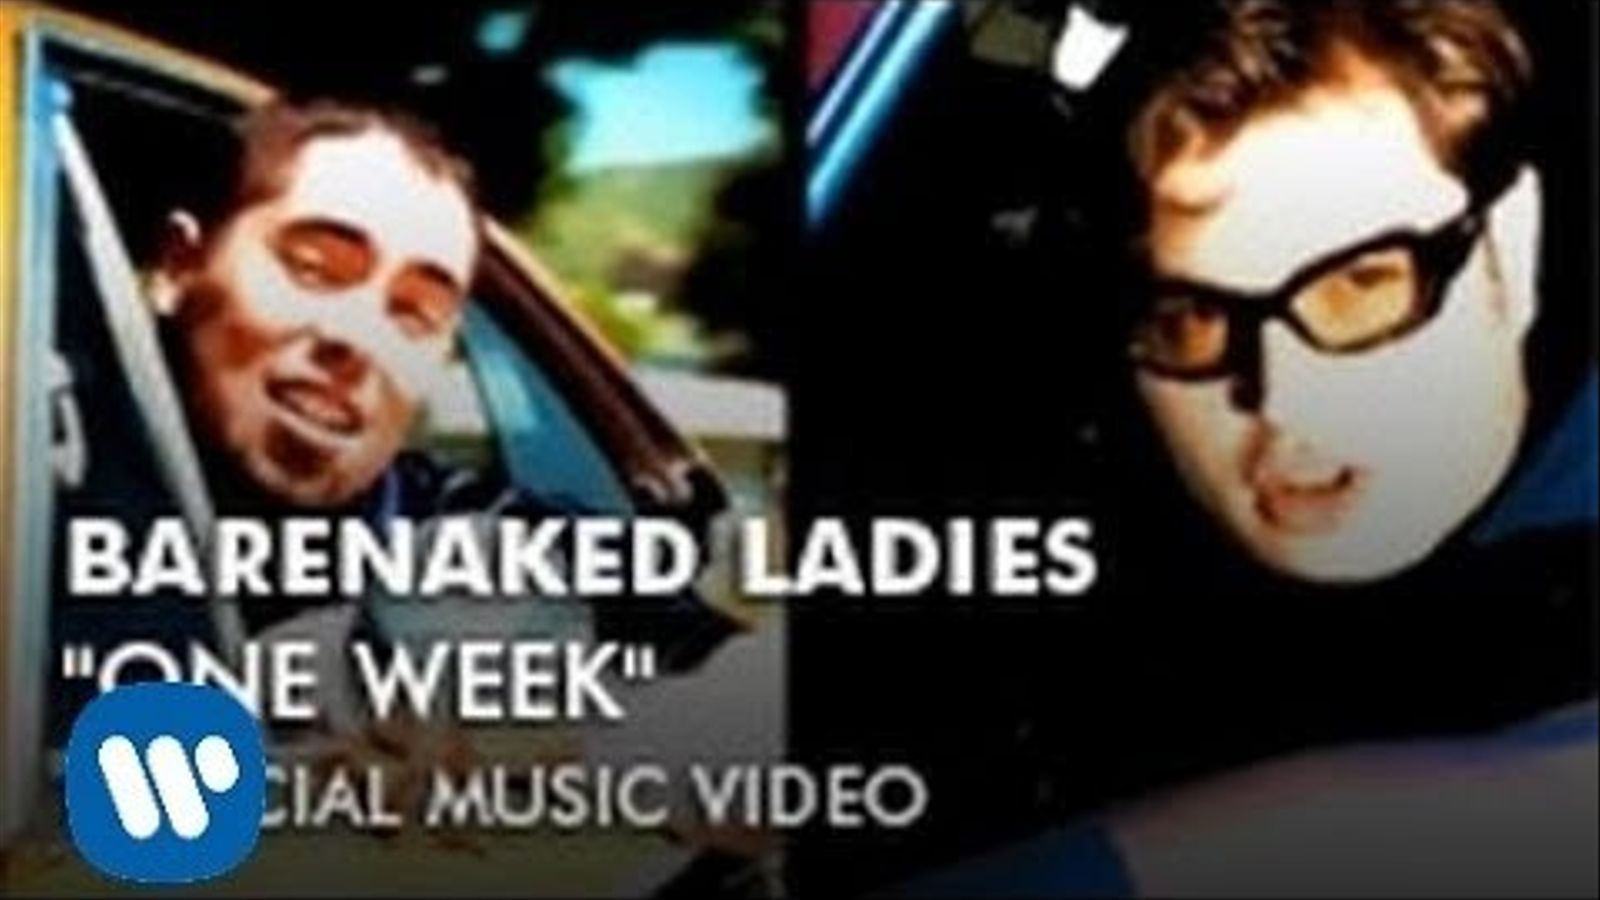 'One week', Barenaked Ladies